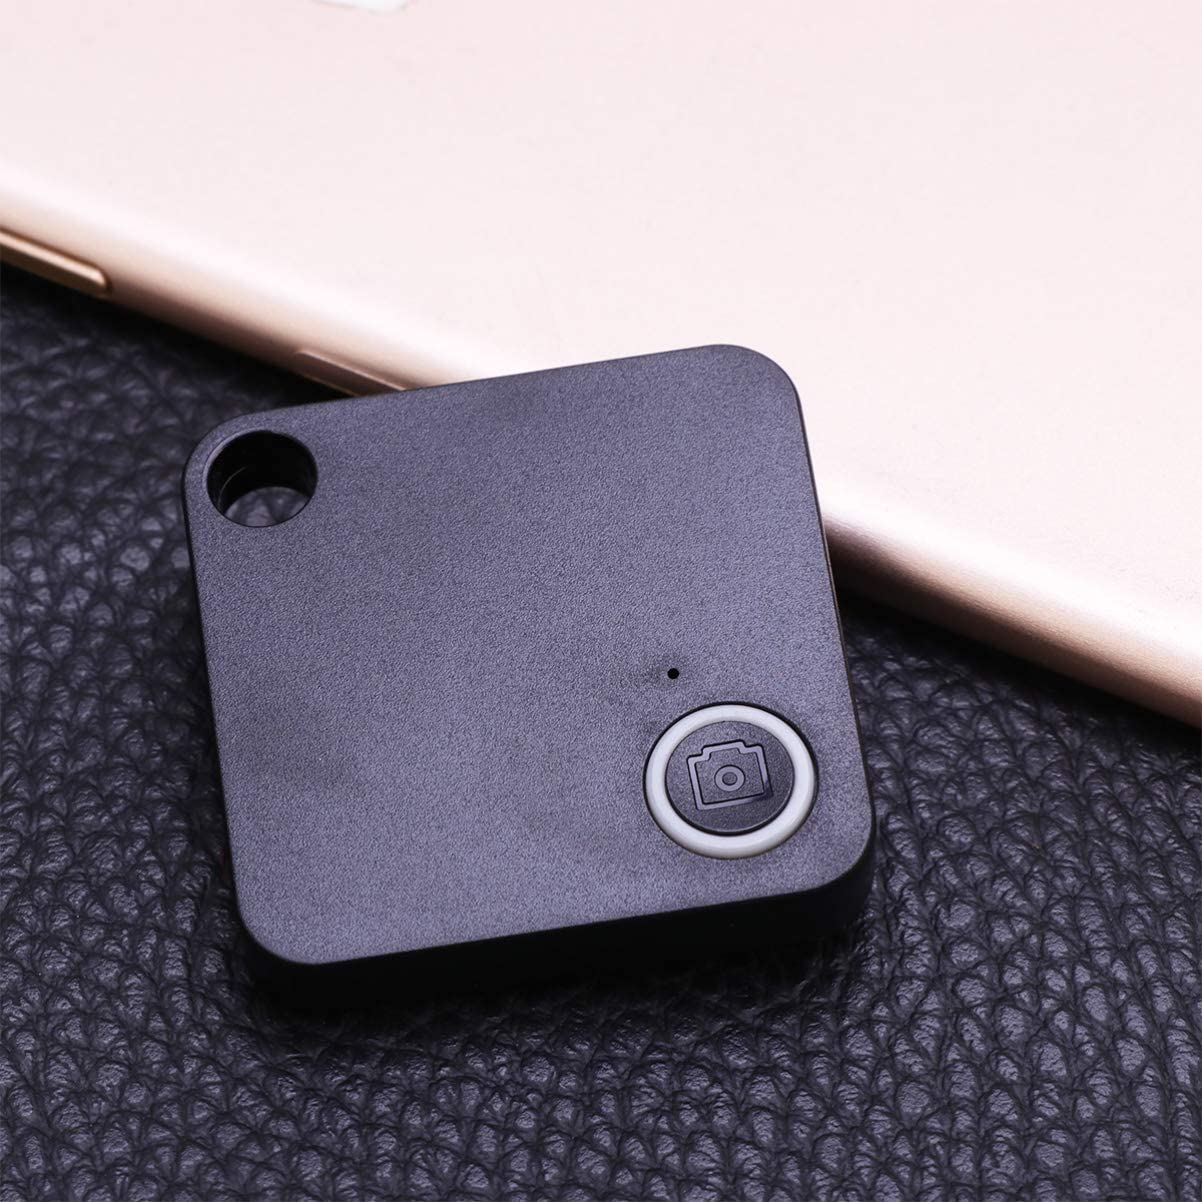 ibasenice Key Finder Anti-Lost Smart Mini GPS Tracking Chip Tags Square GPS Keychain Tracker Locator Device for Phone Luggage Backpack Black